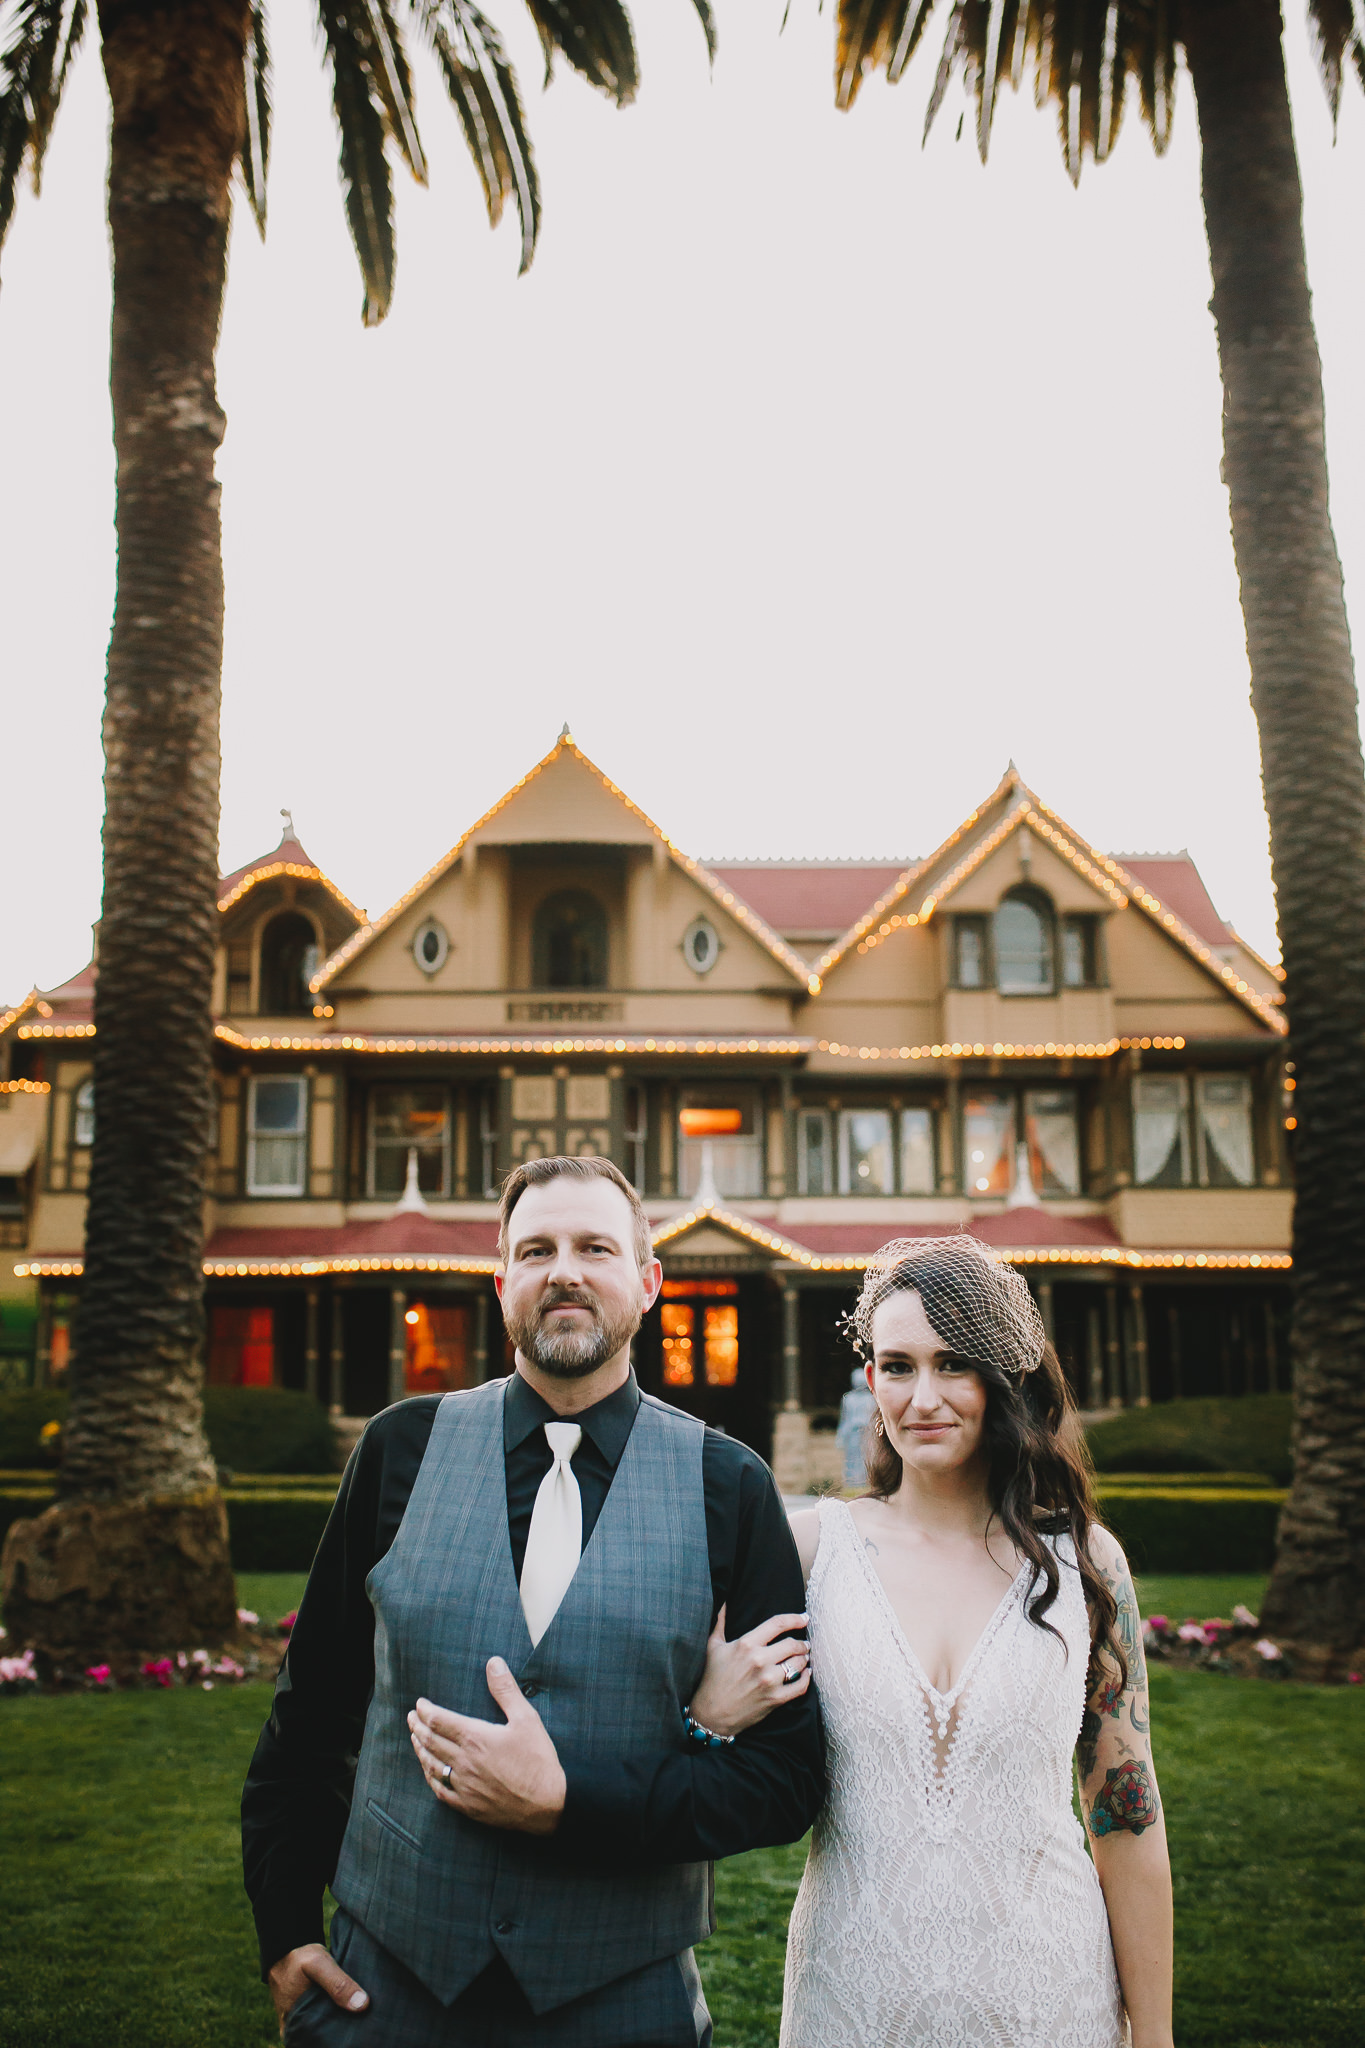 Archer Inspired Photography Sara and Aaron Winchester Mystery House NorCal San Jose California Wedding Photographer-517.jpg